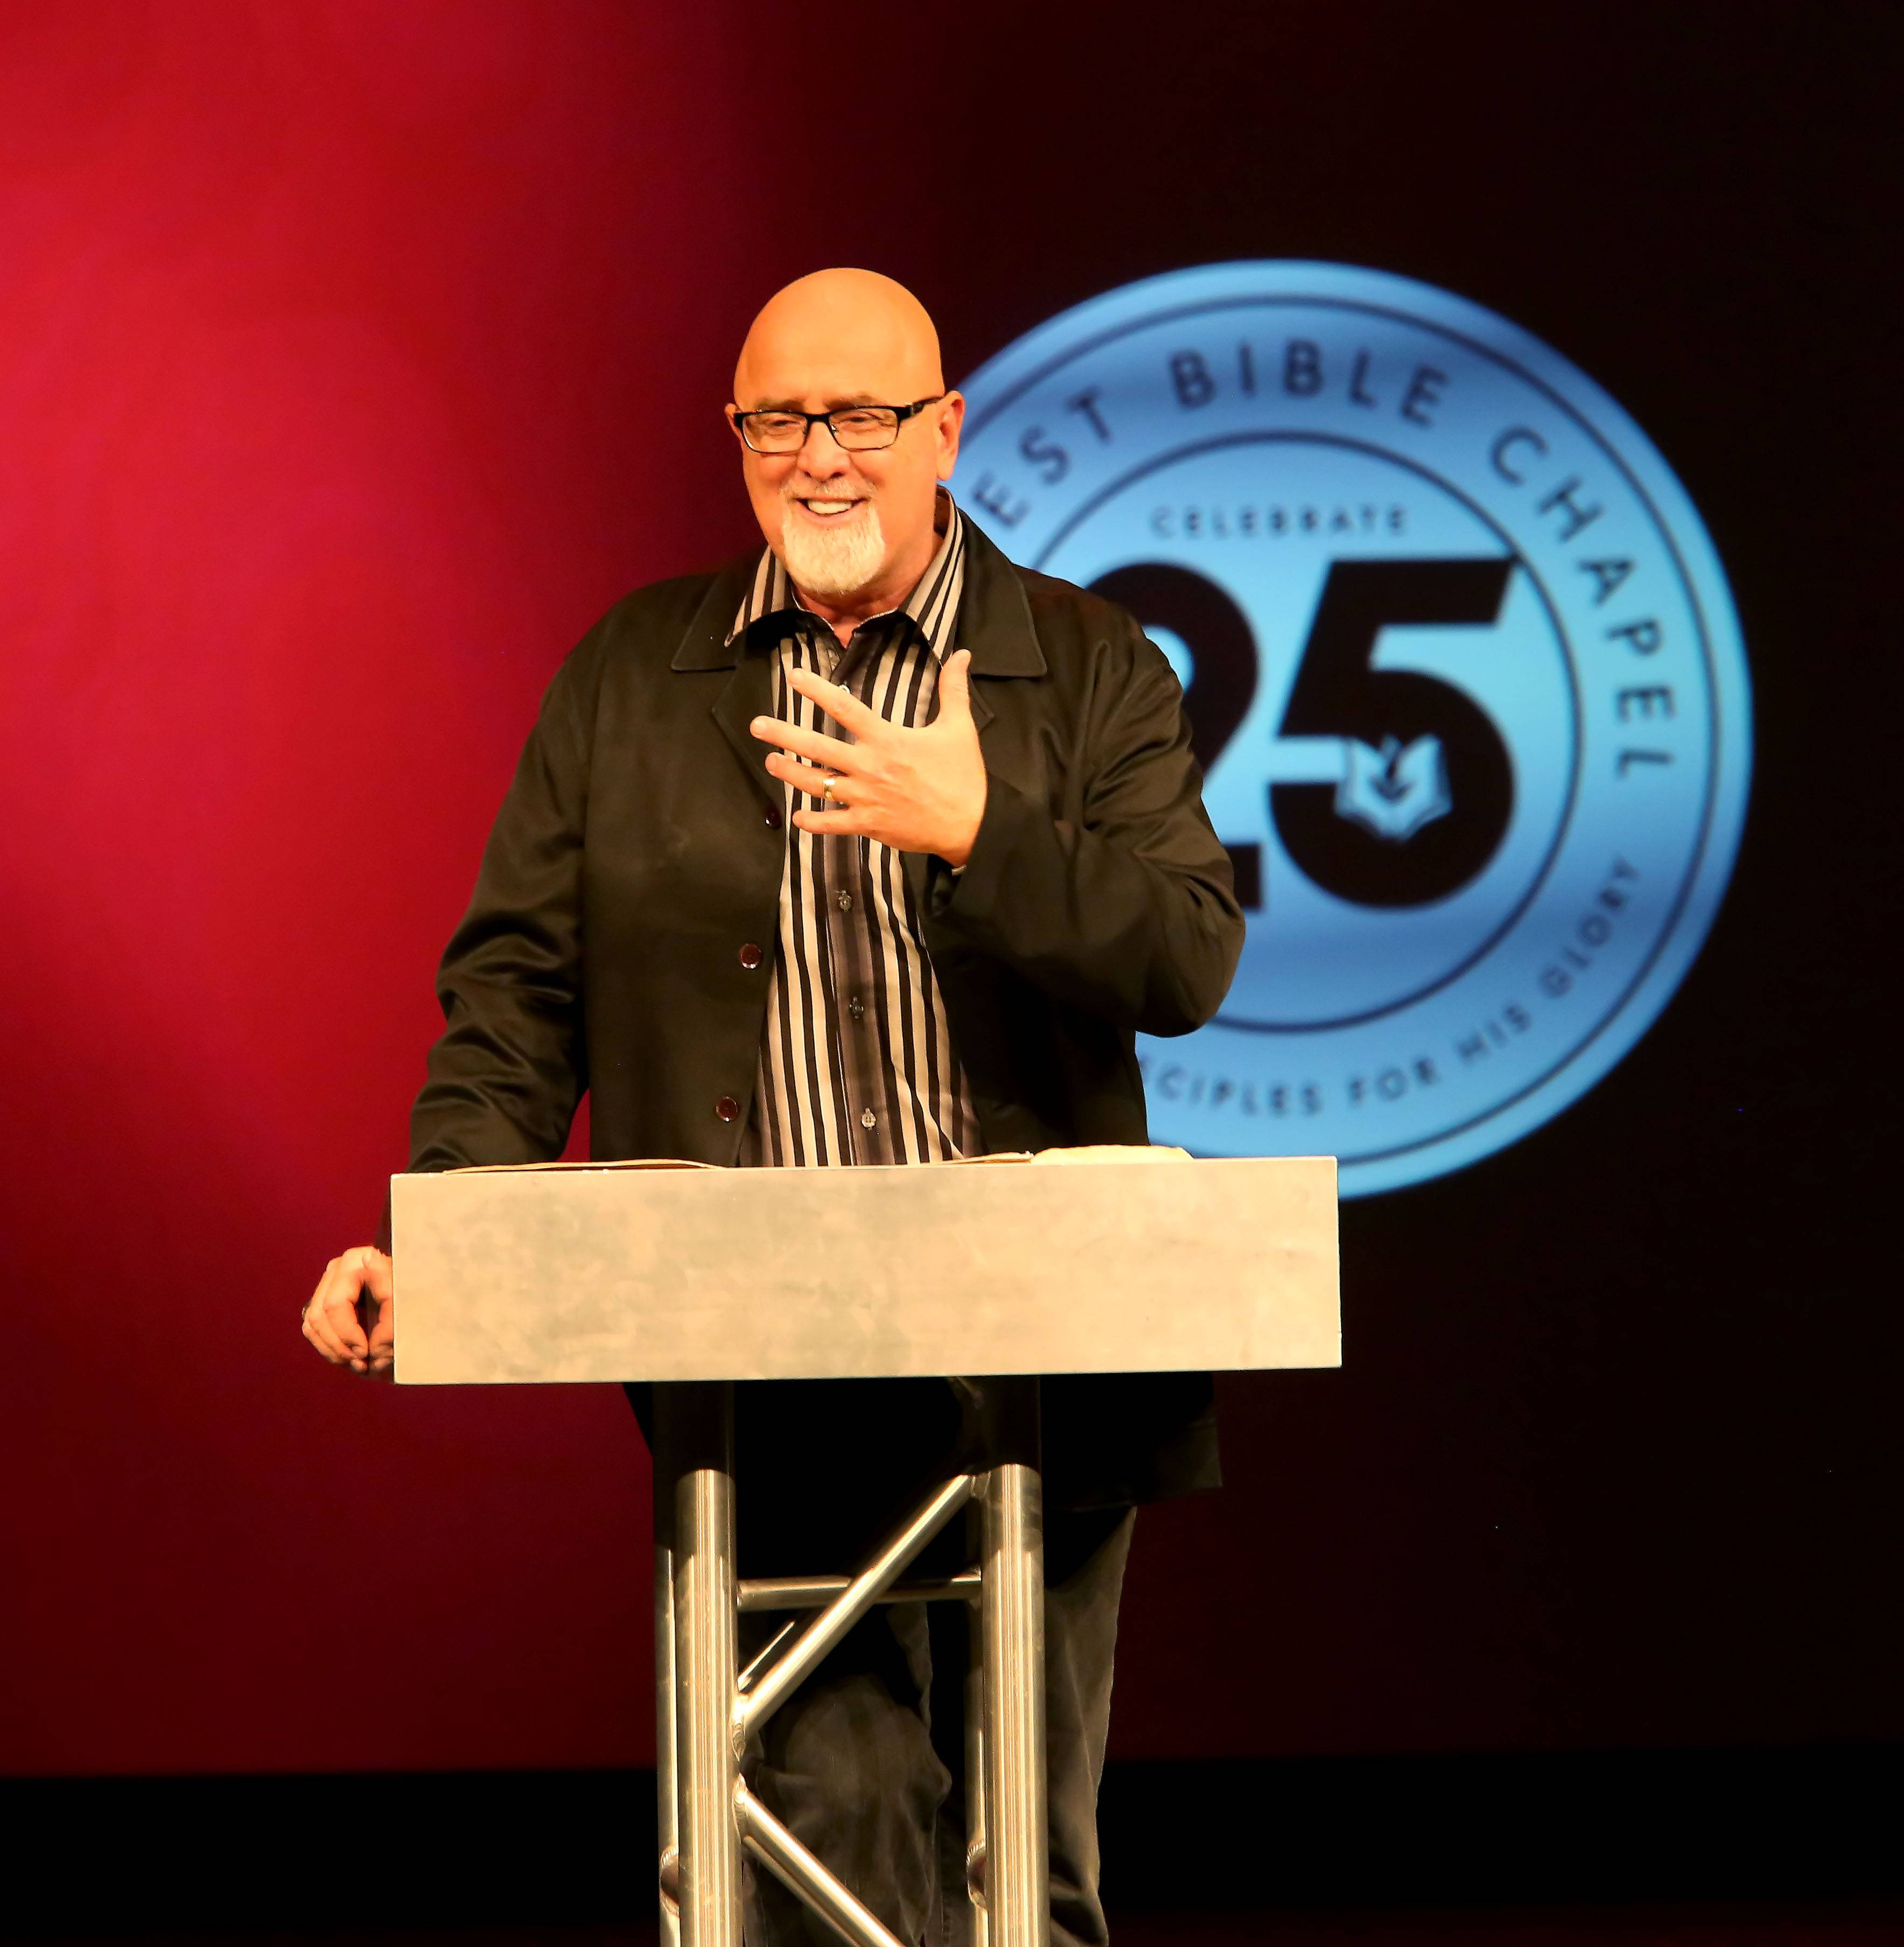 Harvest Bible Chapel moves quickly to fire founder MacDonald after recordings air